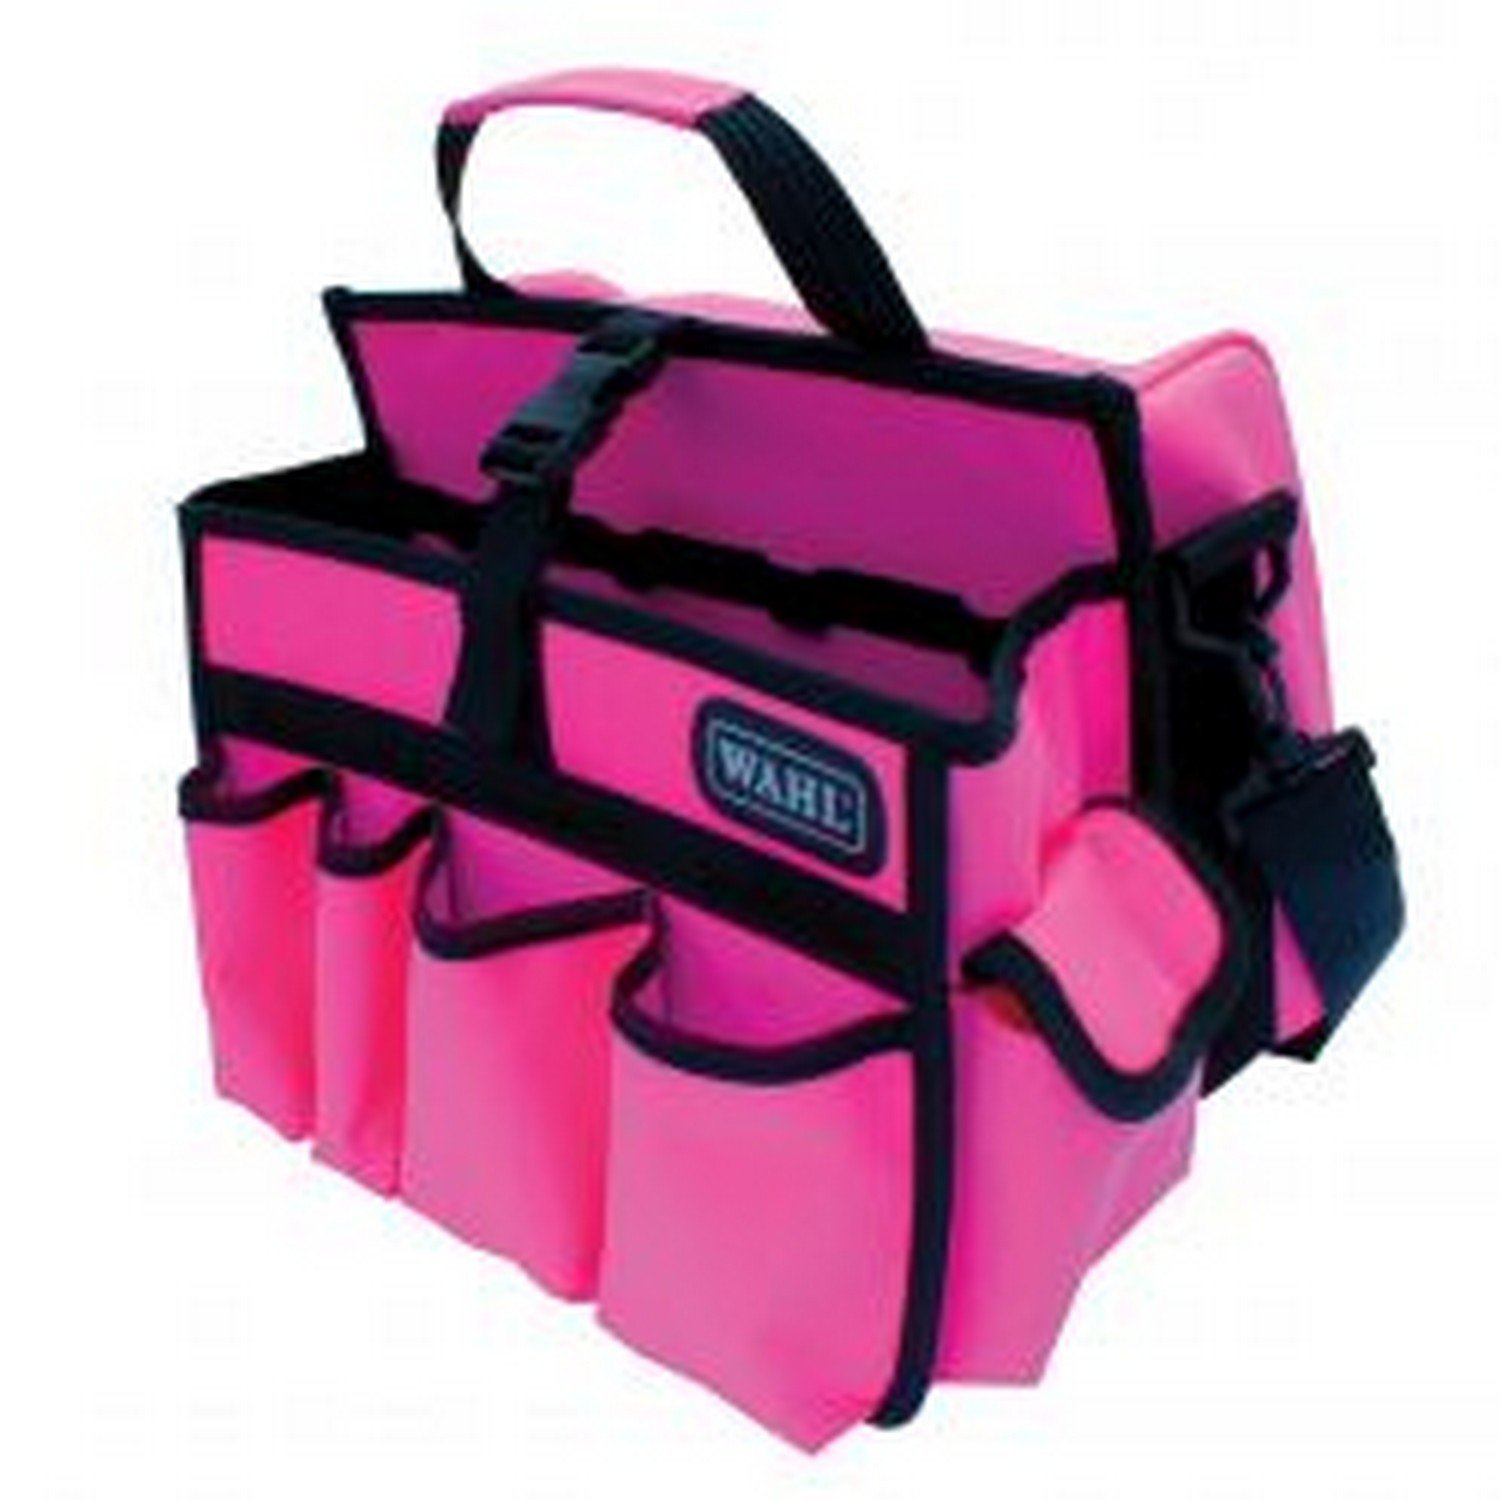 Wahl Pet Grooming Bag